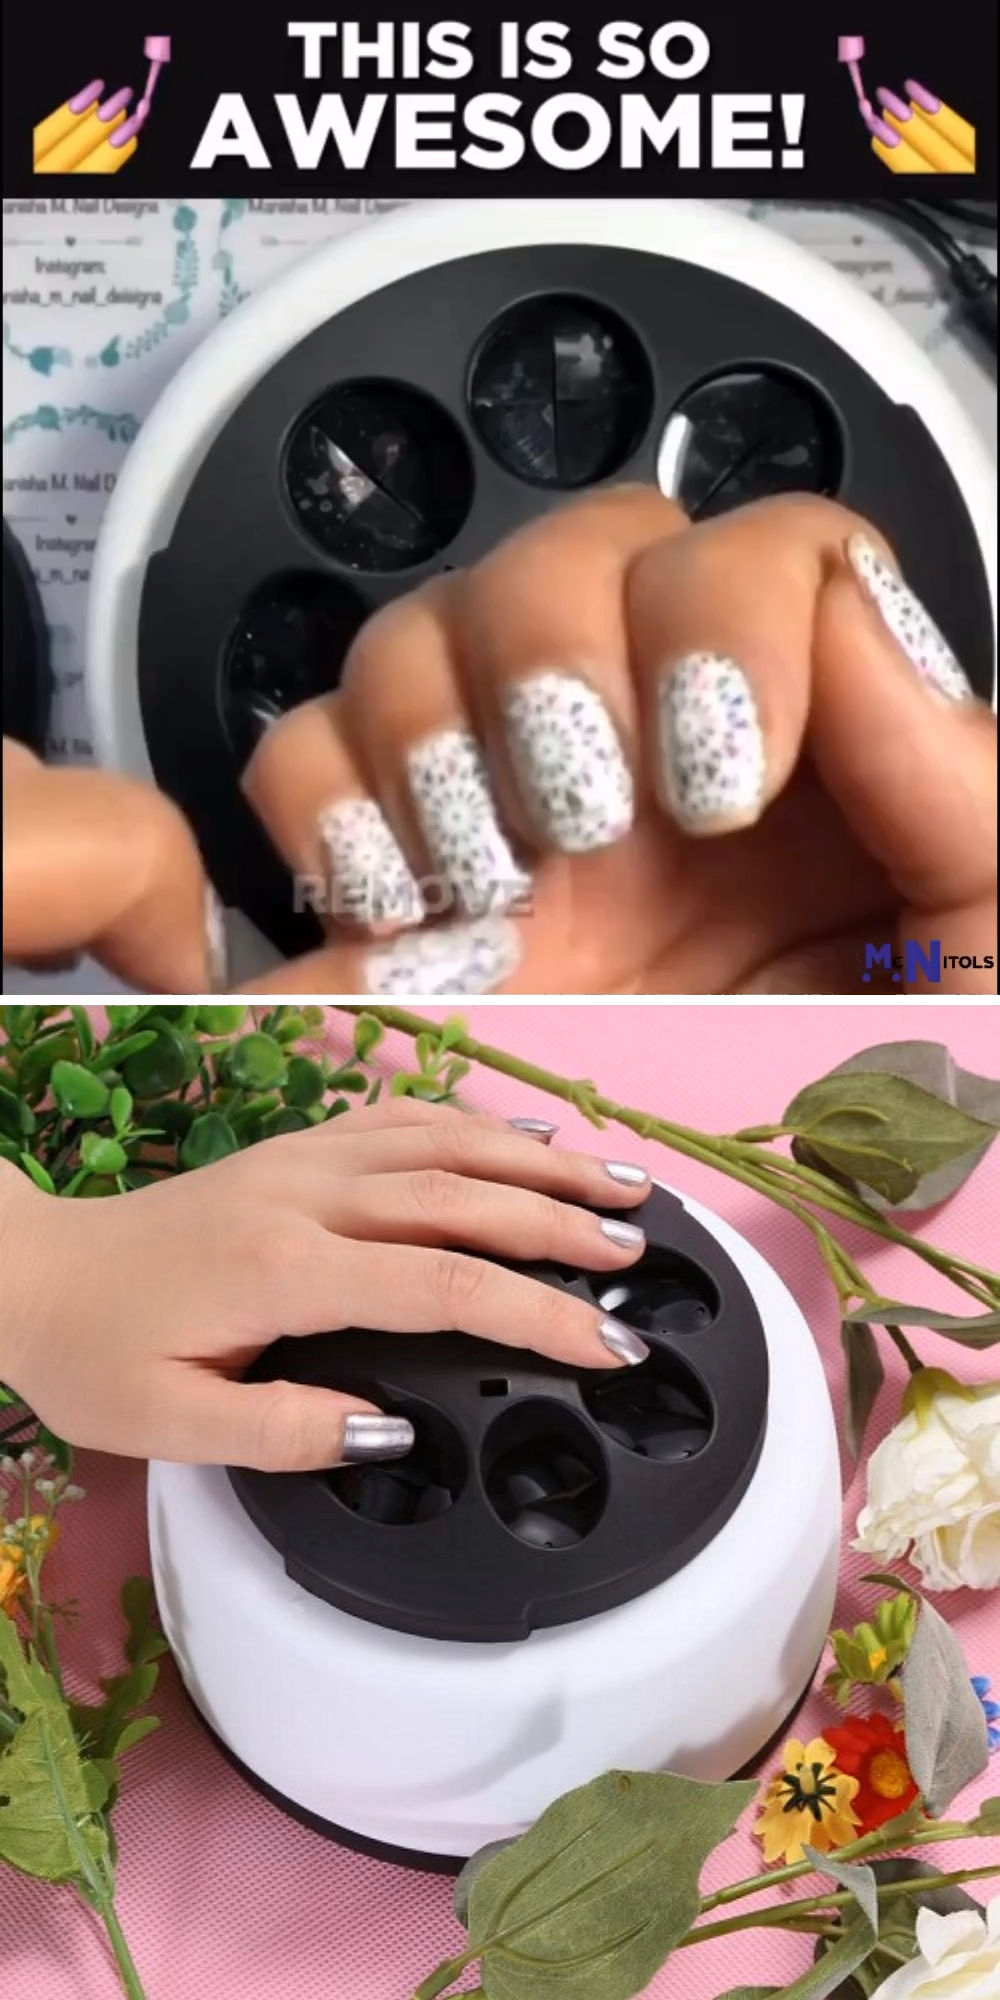 How To Remove The Gel Nail Polish Quick And Easily Gel Nail Polish Remover Machine In 2020 Gel Nails Nail Polish Gel Nail Polish Remover